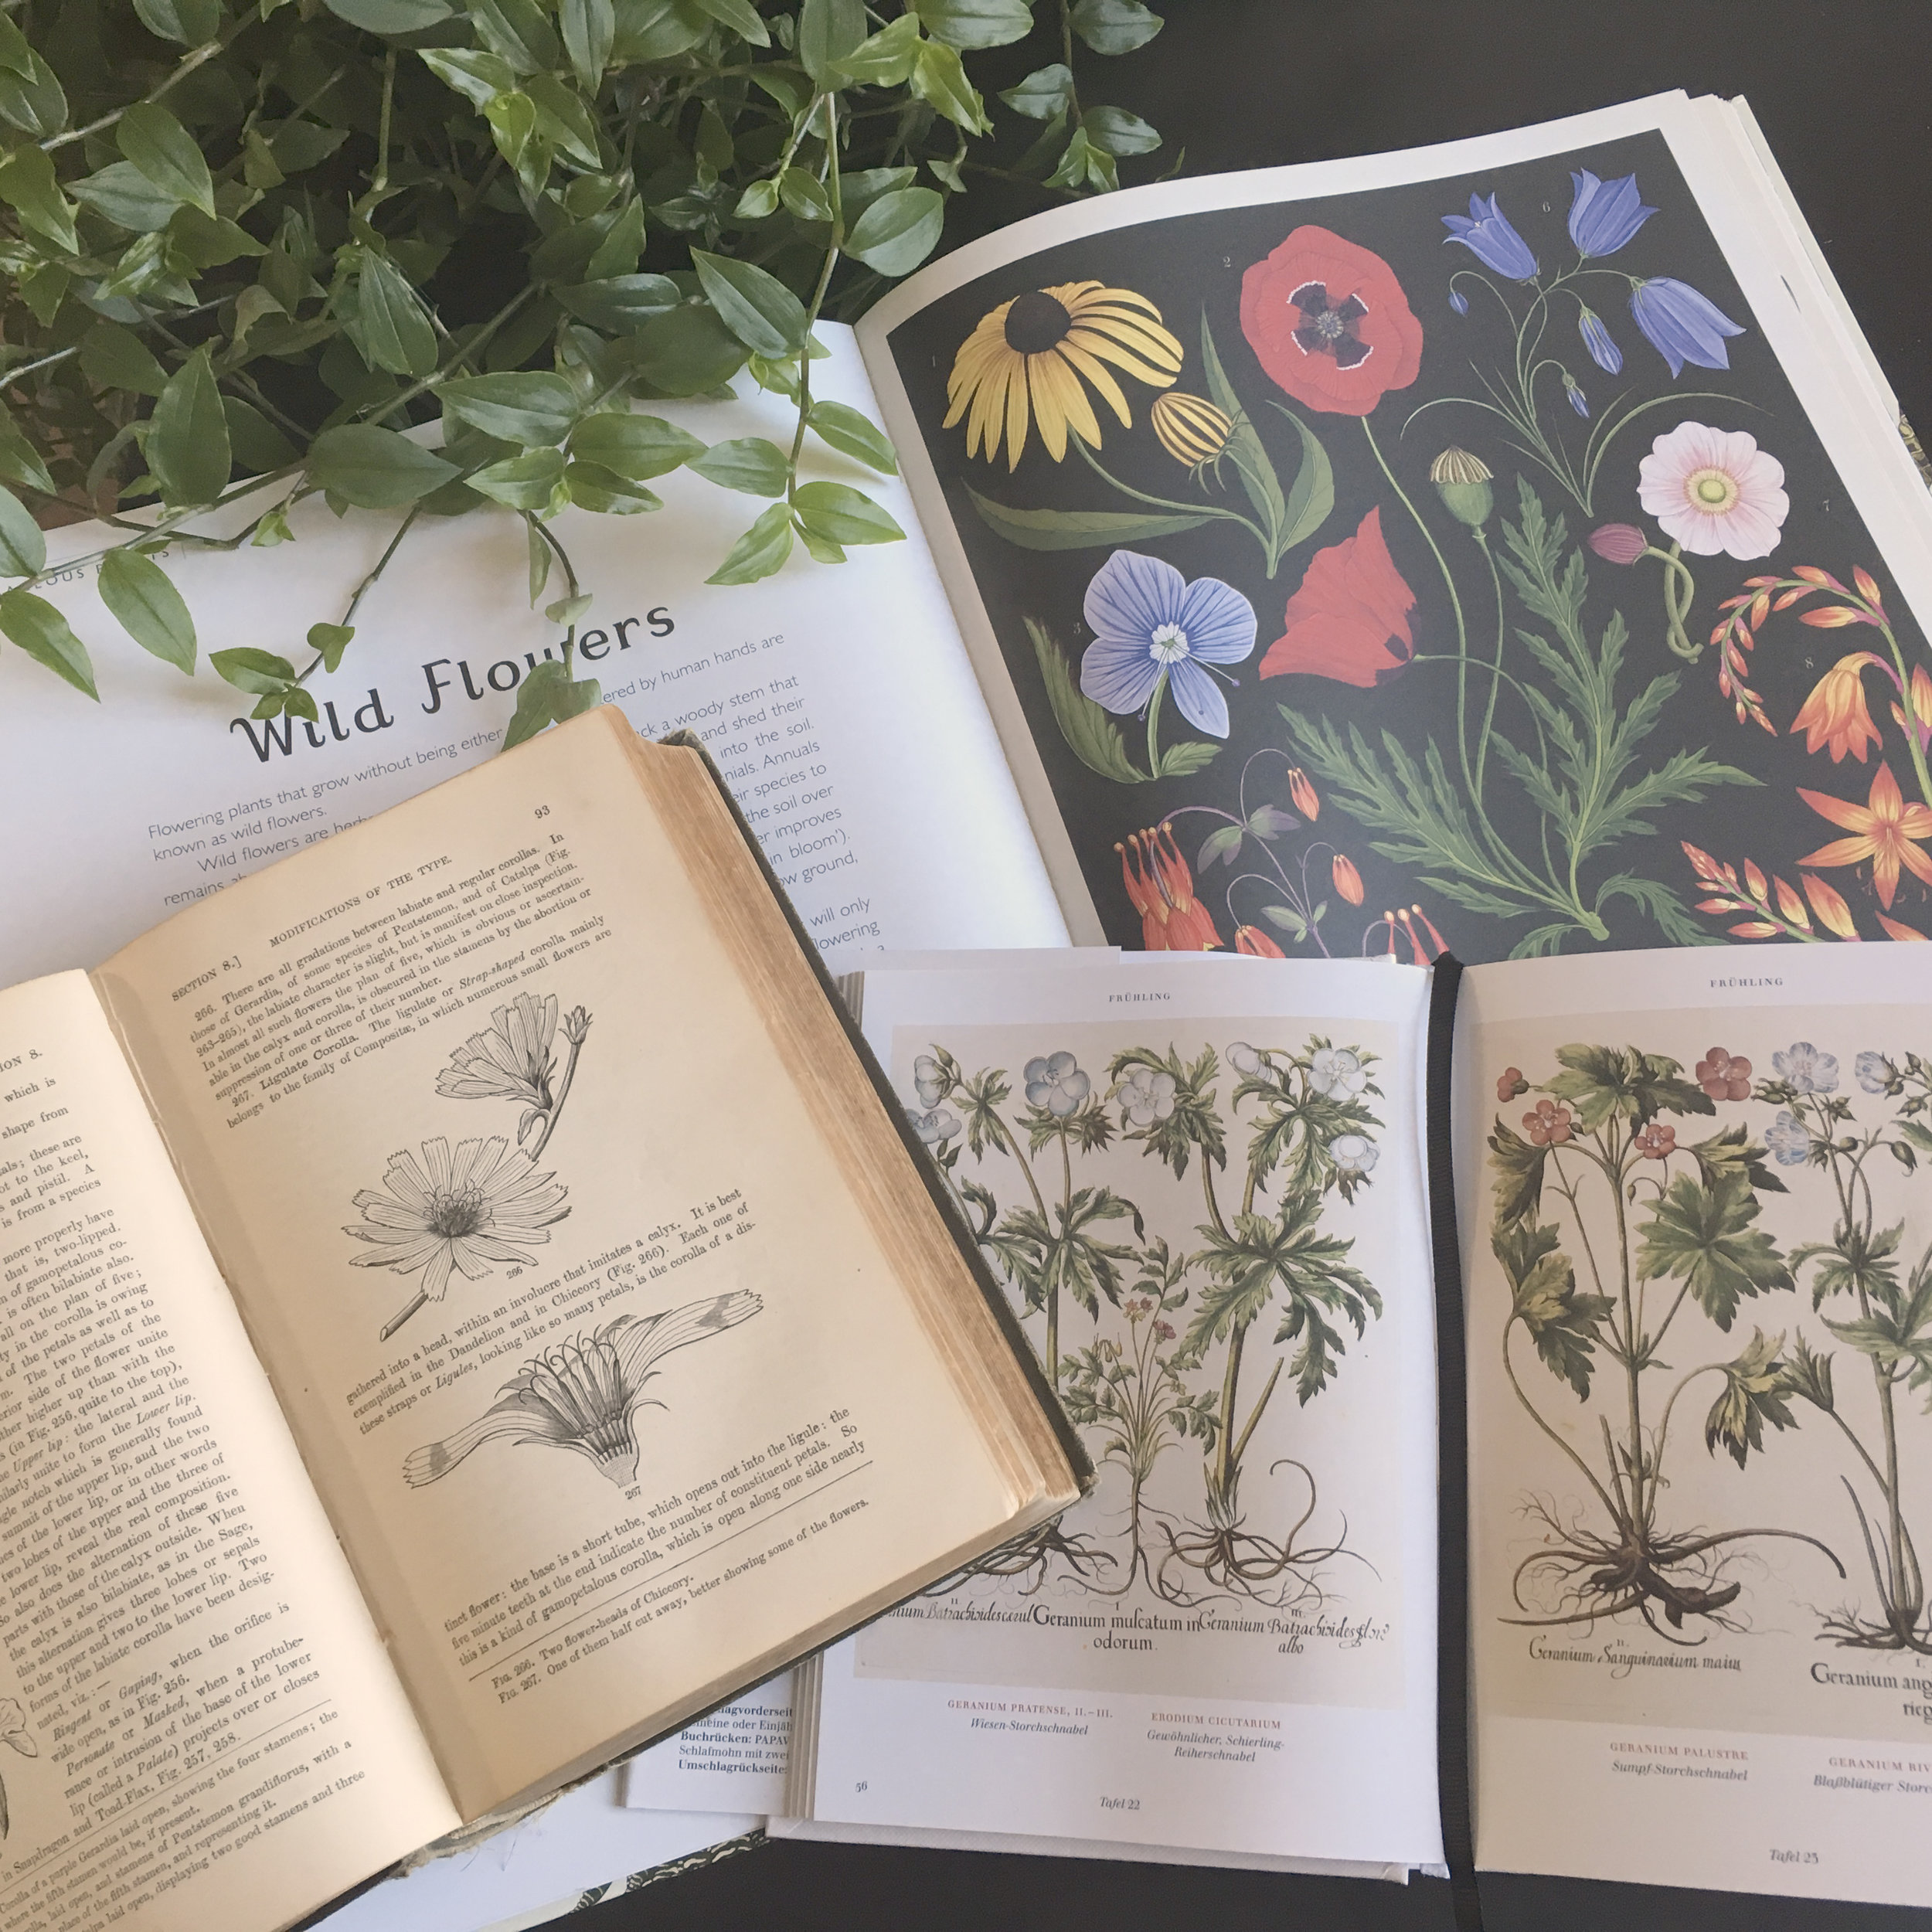 Botanical illustrations are a useful (and beautiful!) identification aid.